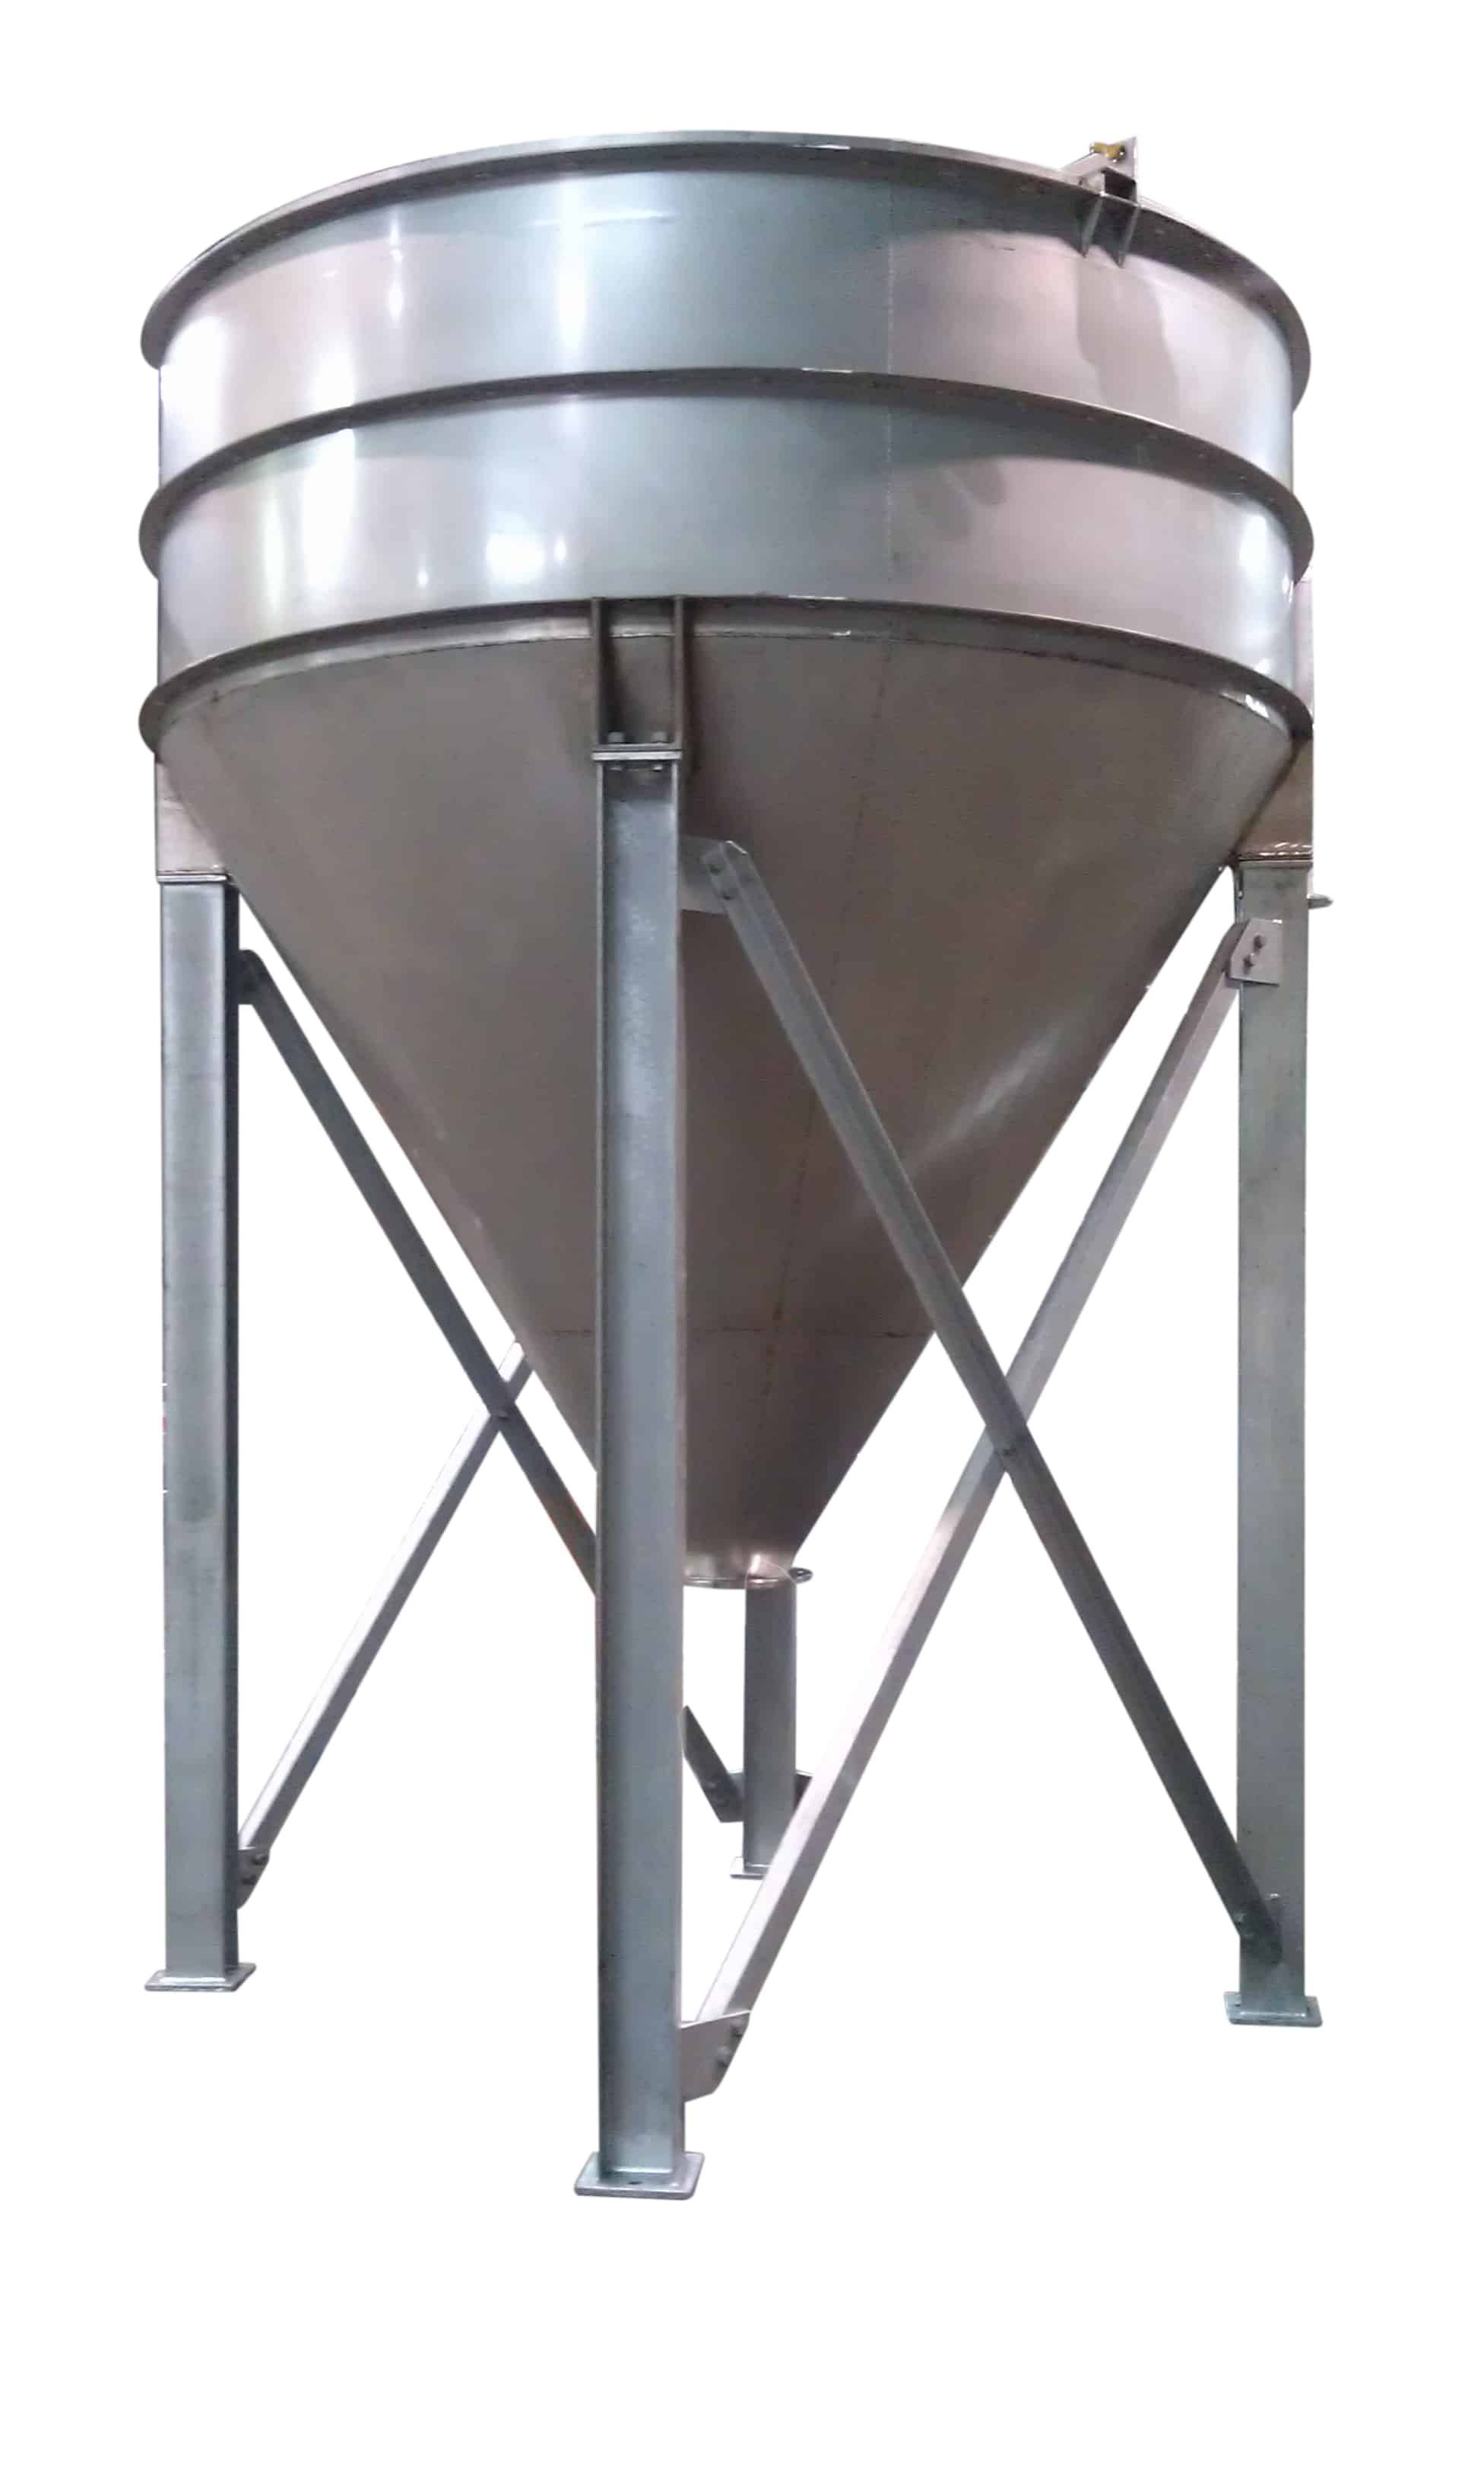 Conical base clarifier